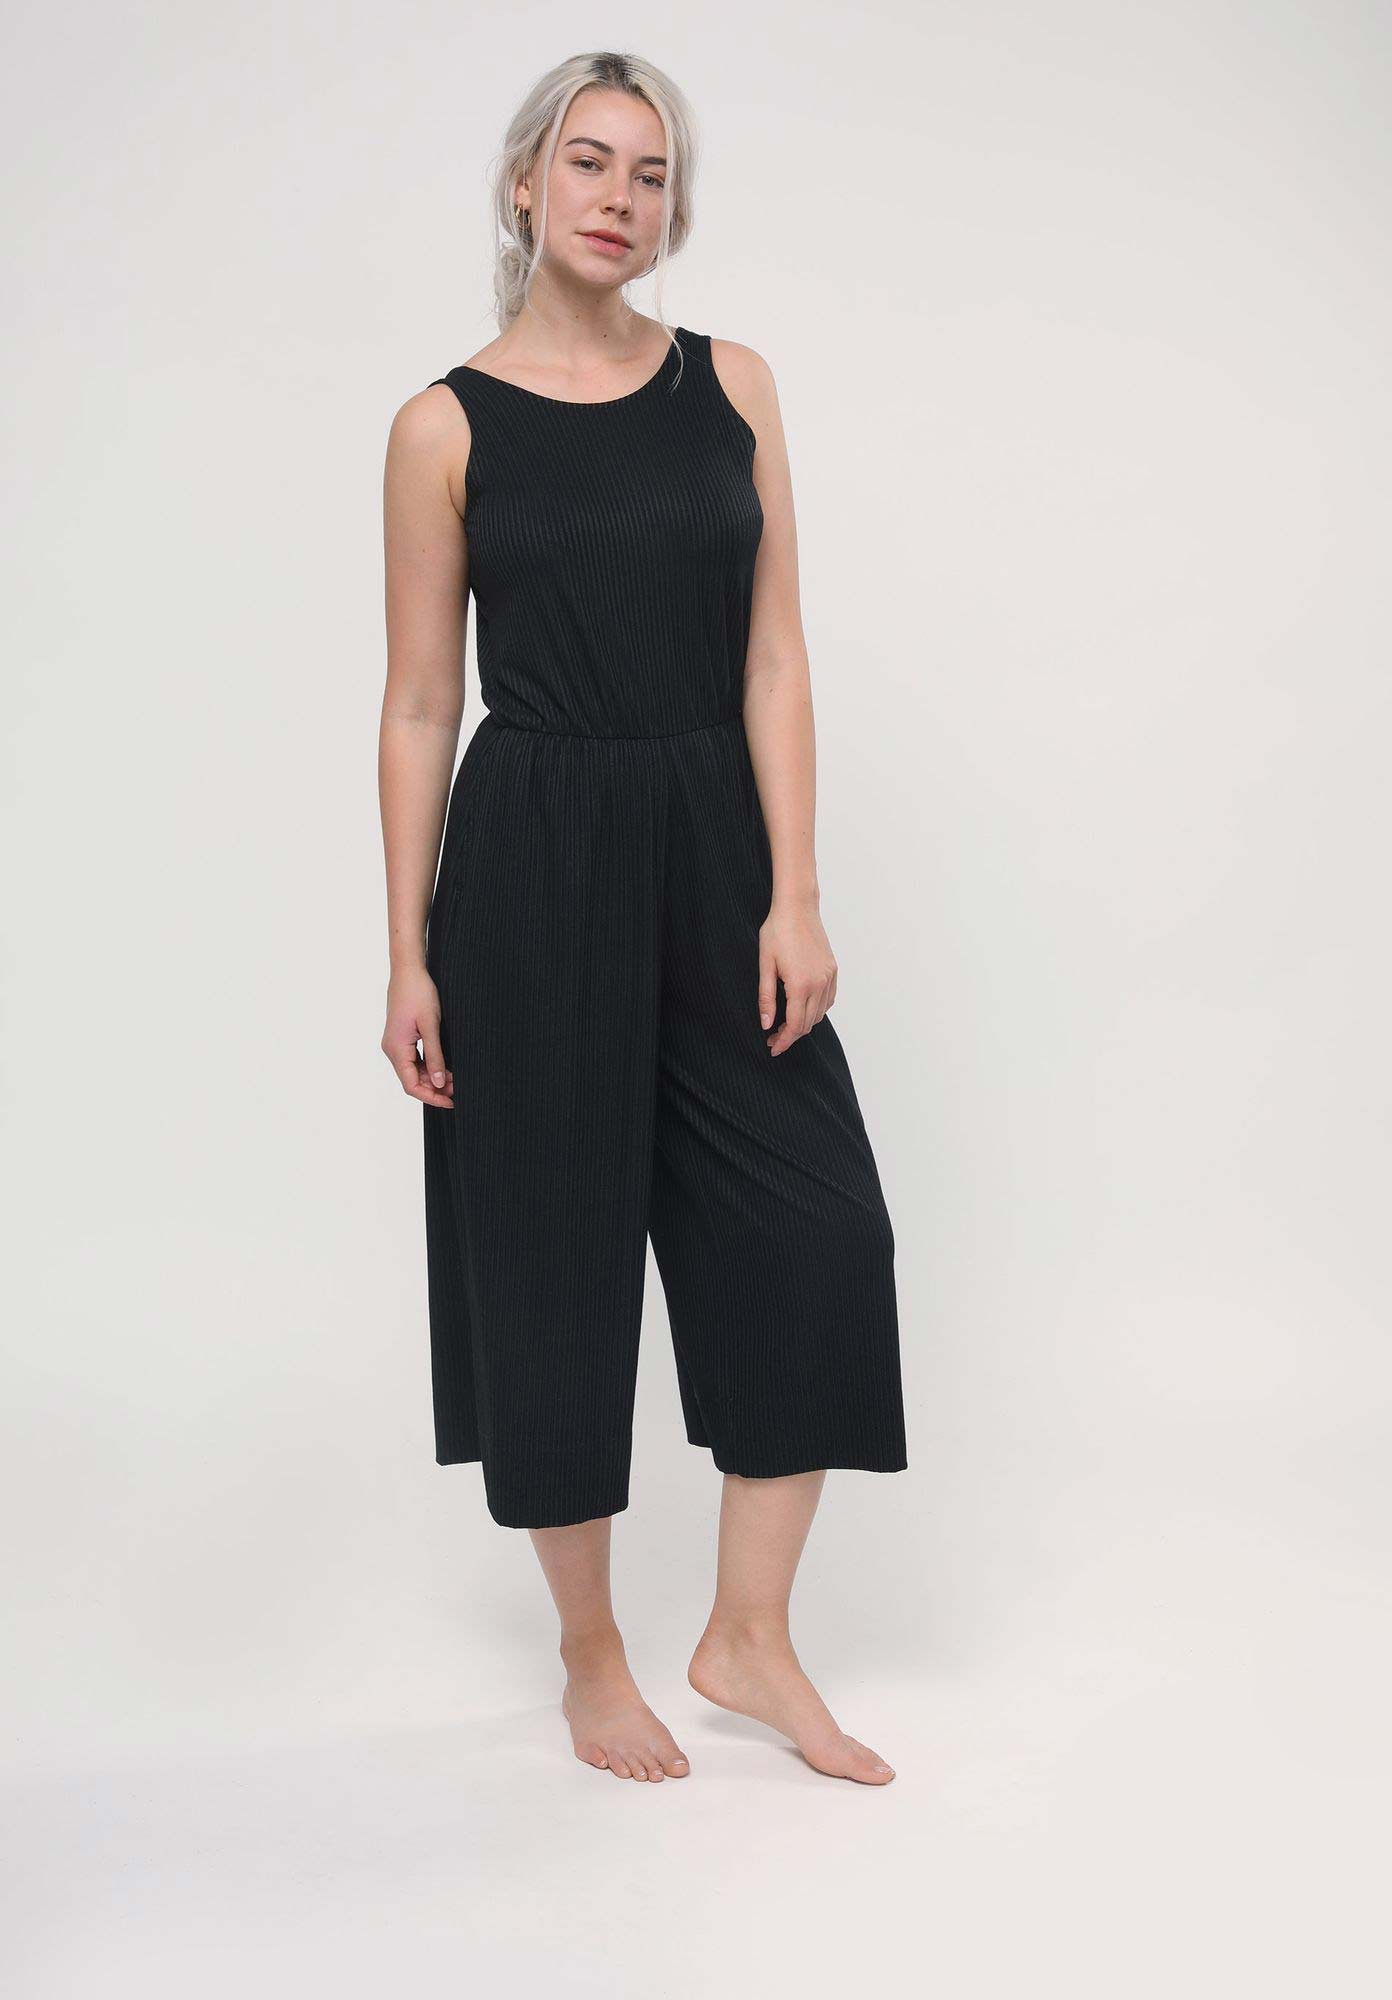 LOVJOI Damen Jumpsuit in schwarz aus TENCEL